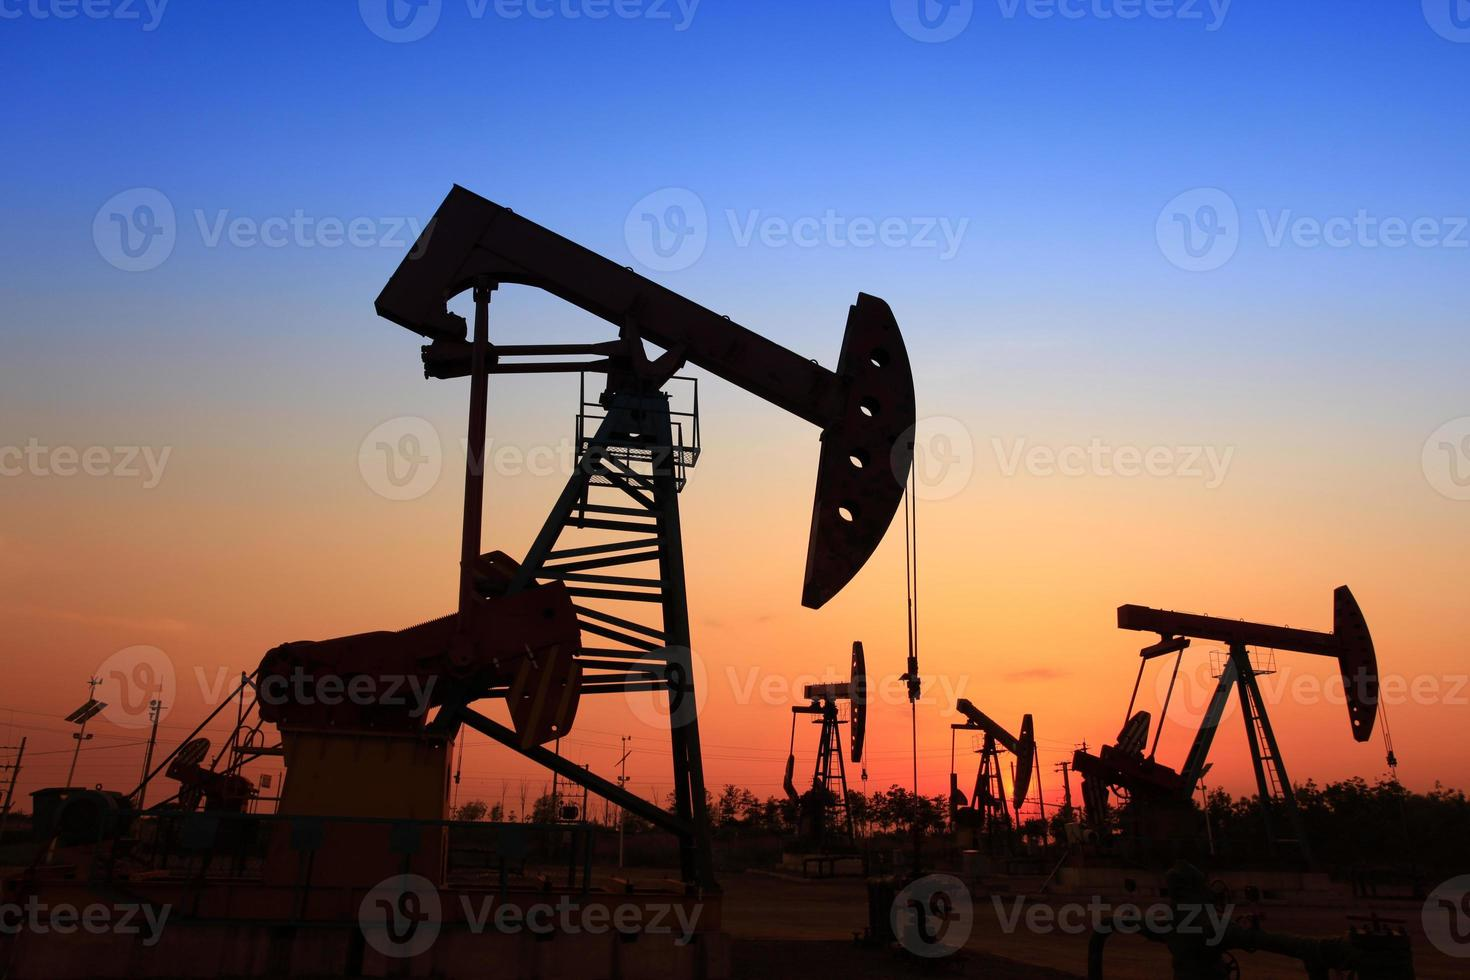 The oil pump photo